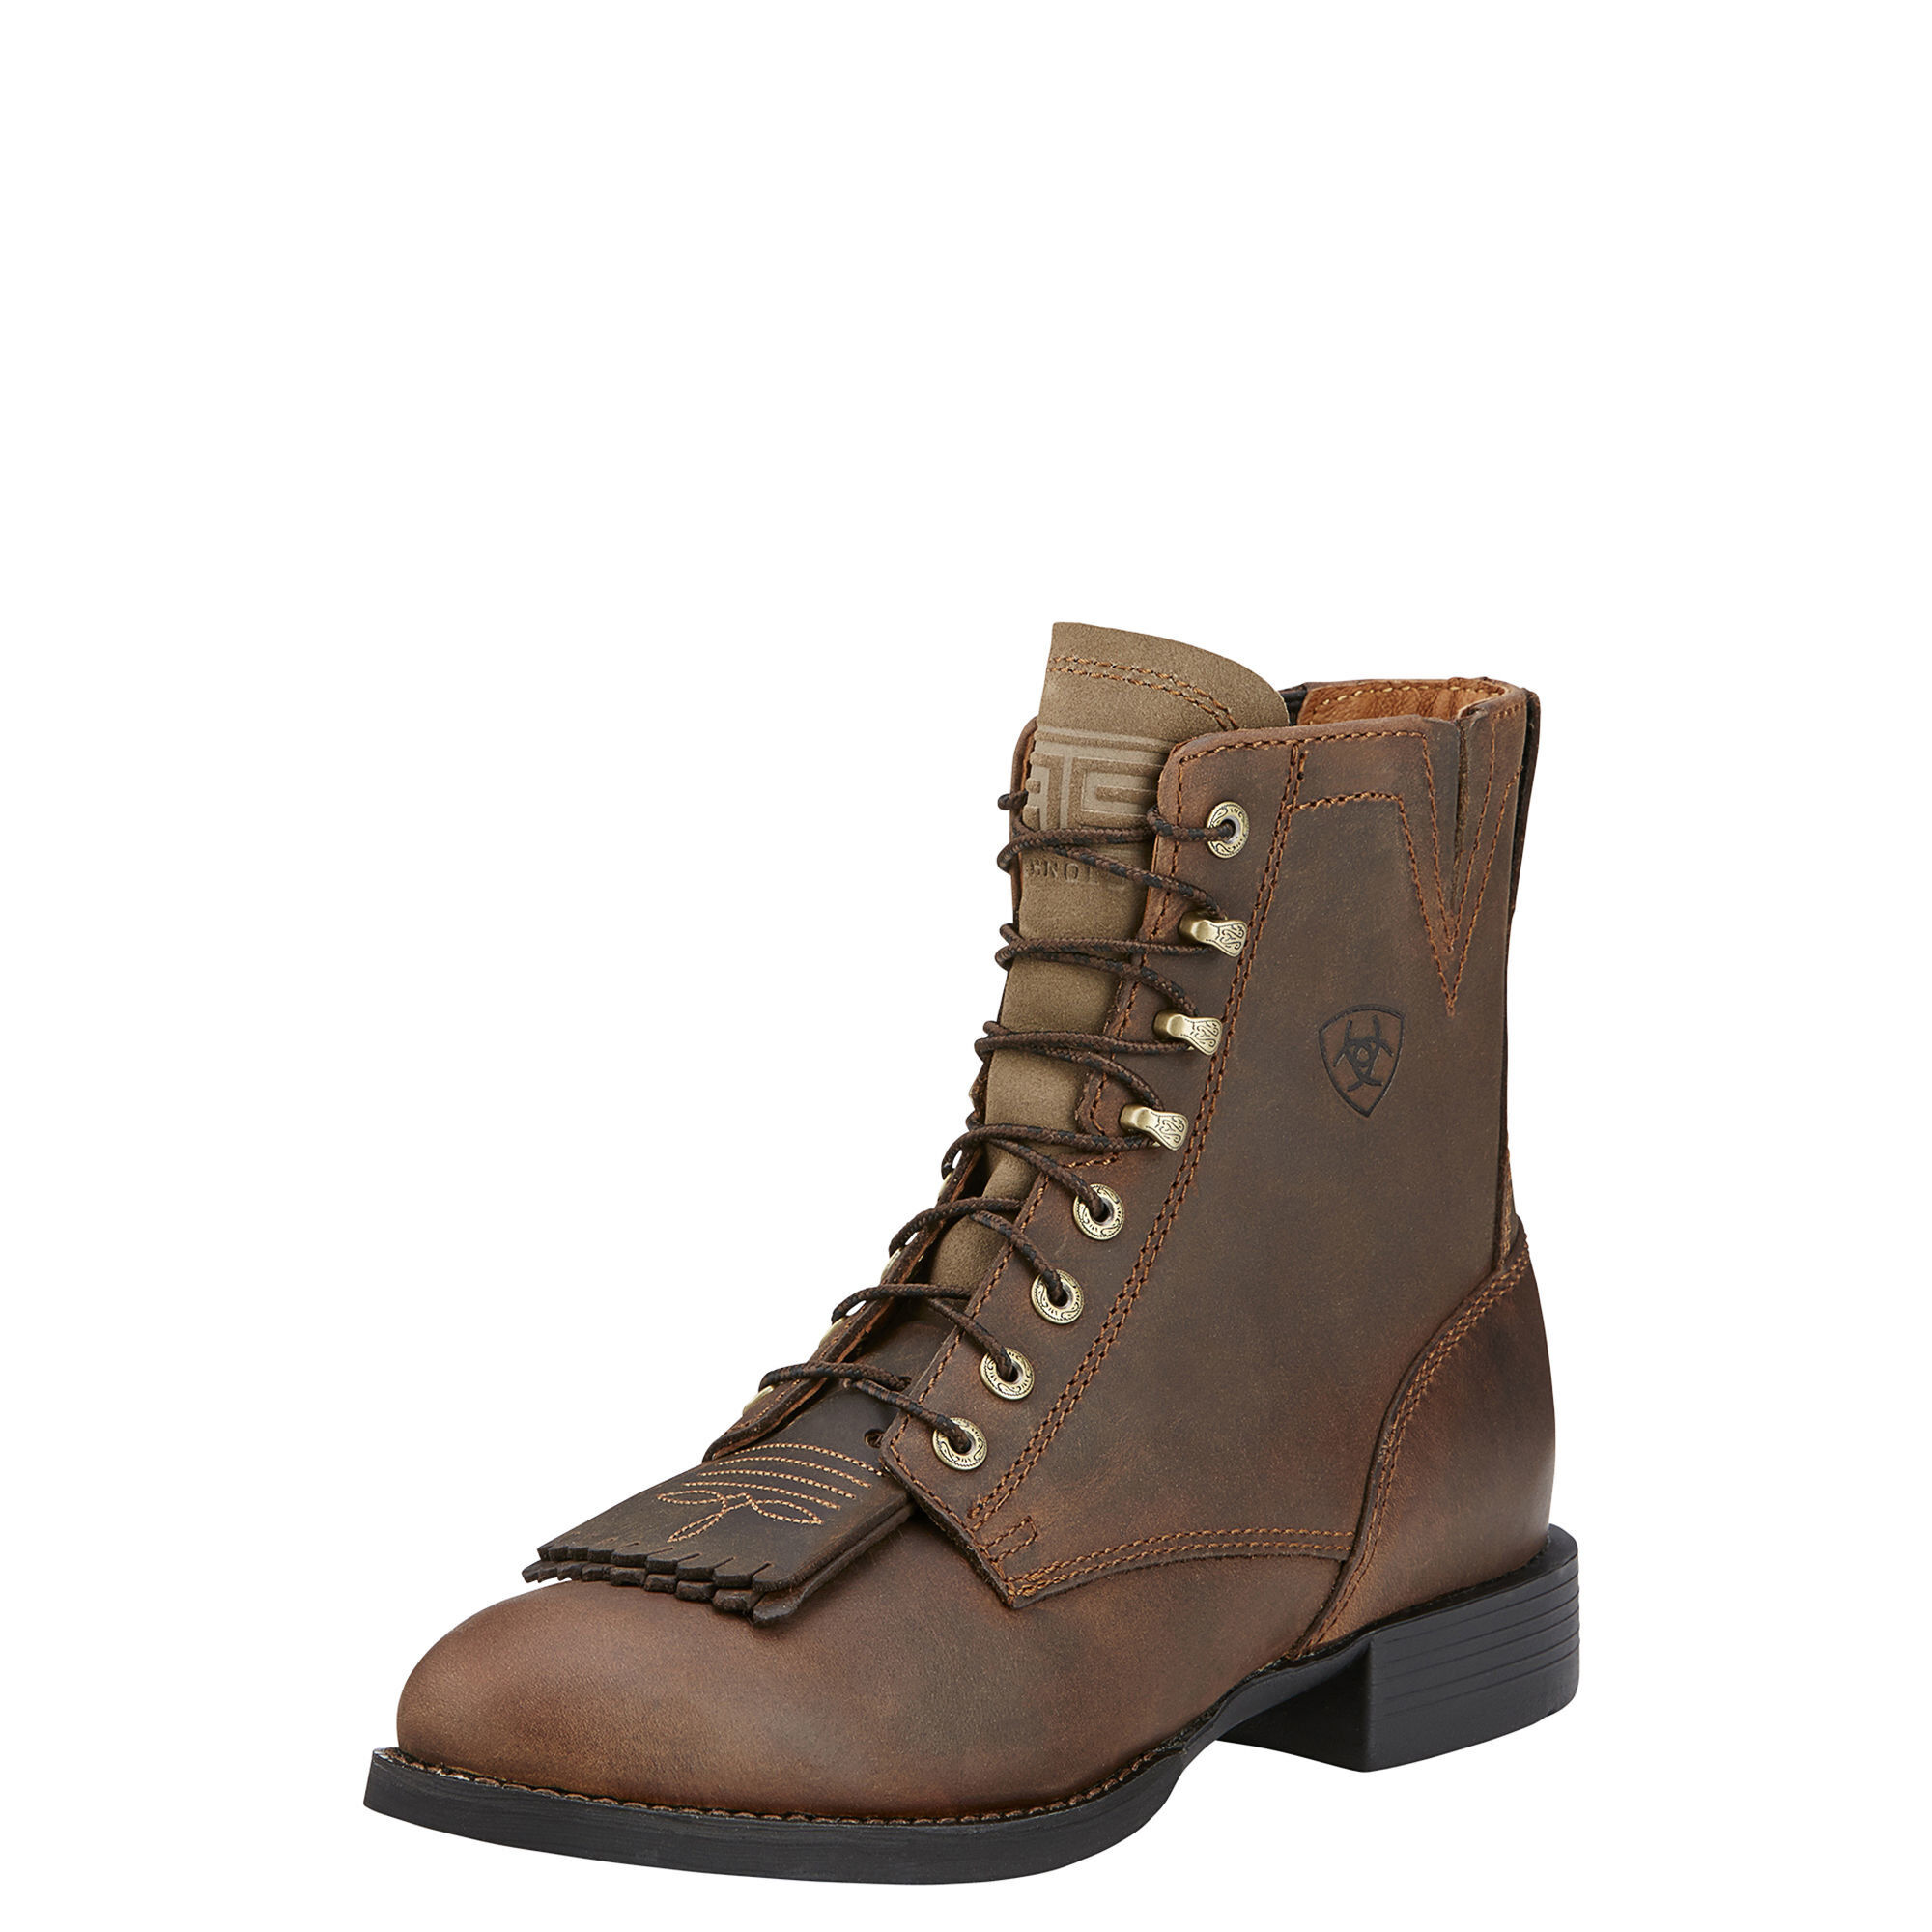 Women's Heritage Lacer II Boots in Distressed Brown by Ariat